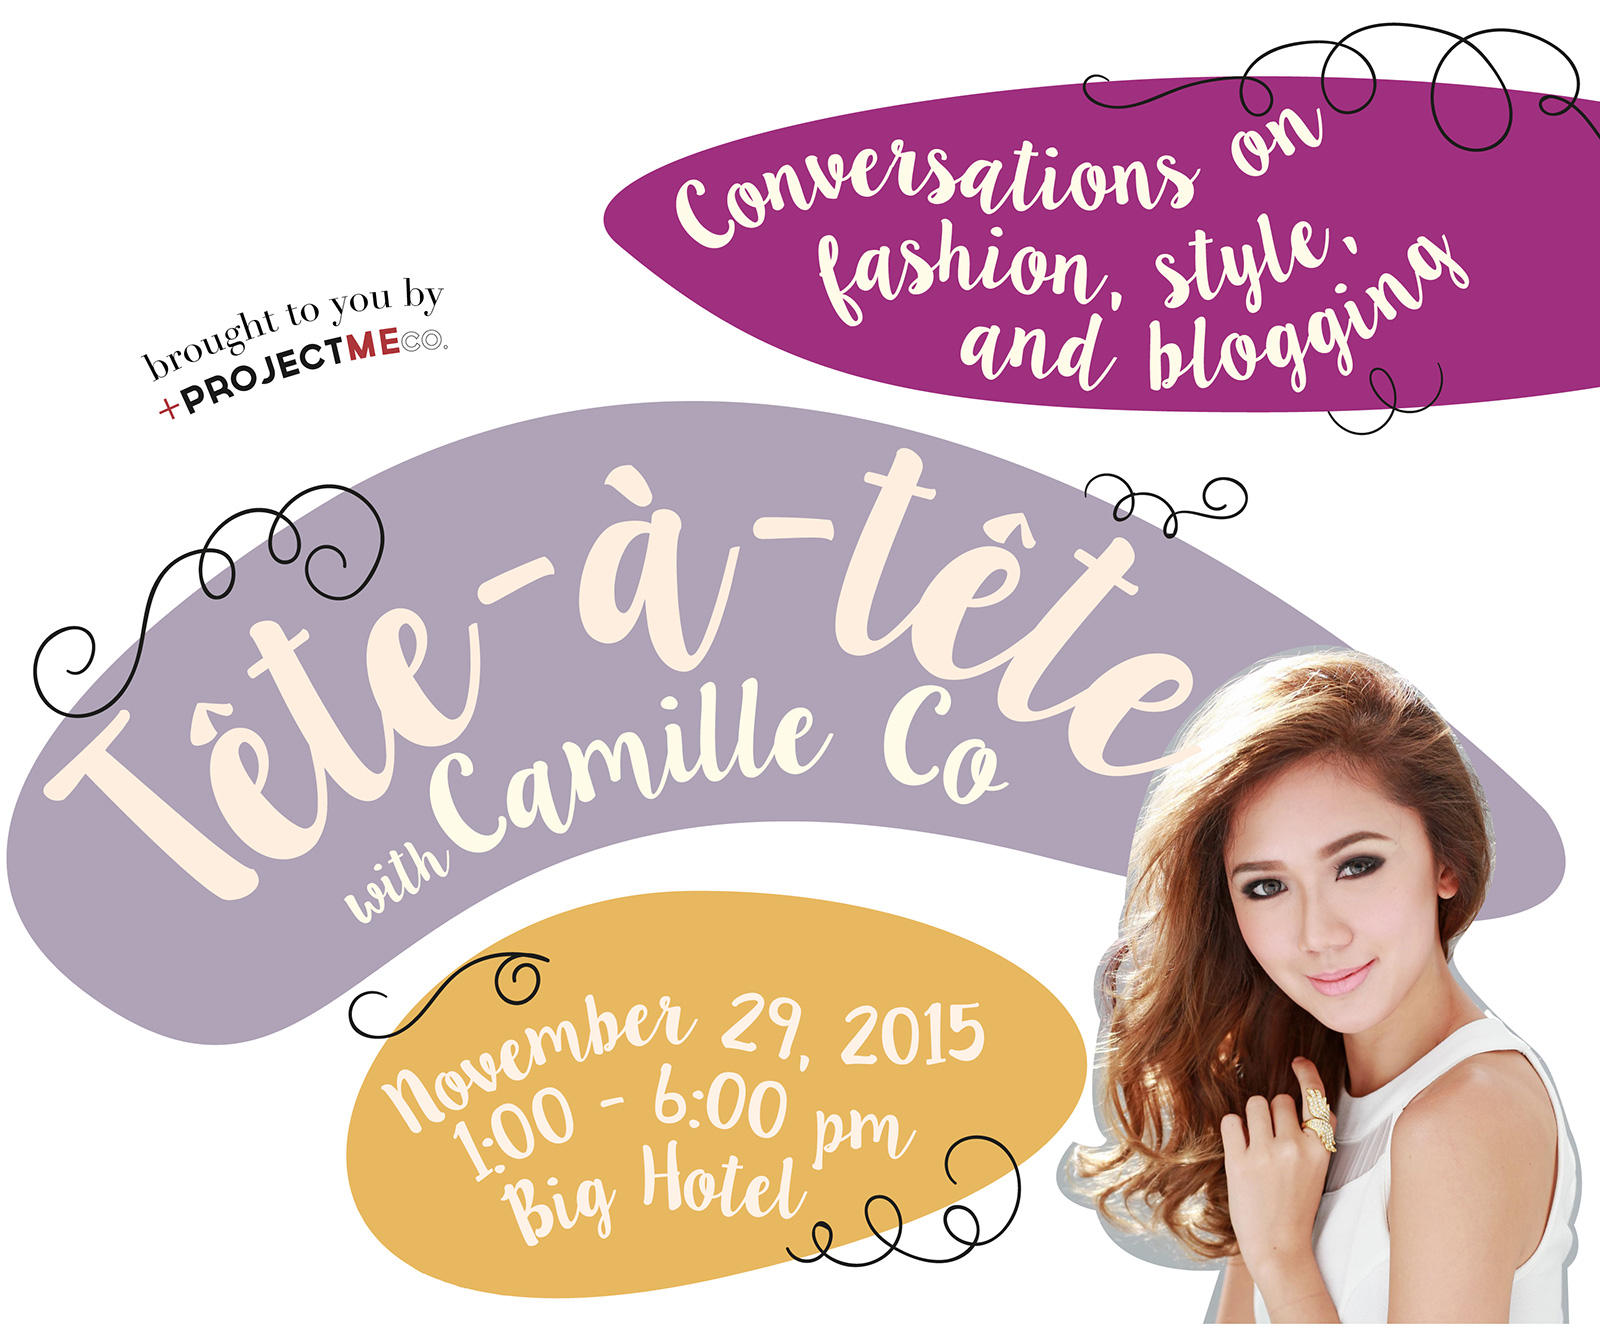 Tête-à-tête With Camille Co in Cebu - www.itscamilleco.com